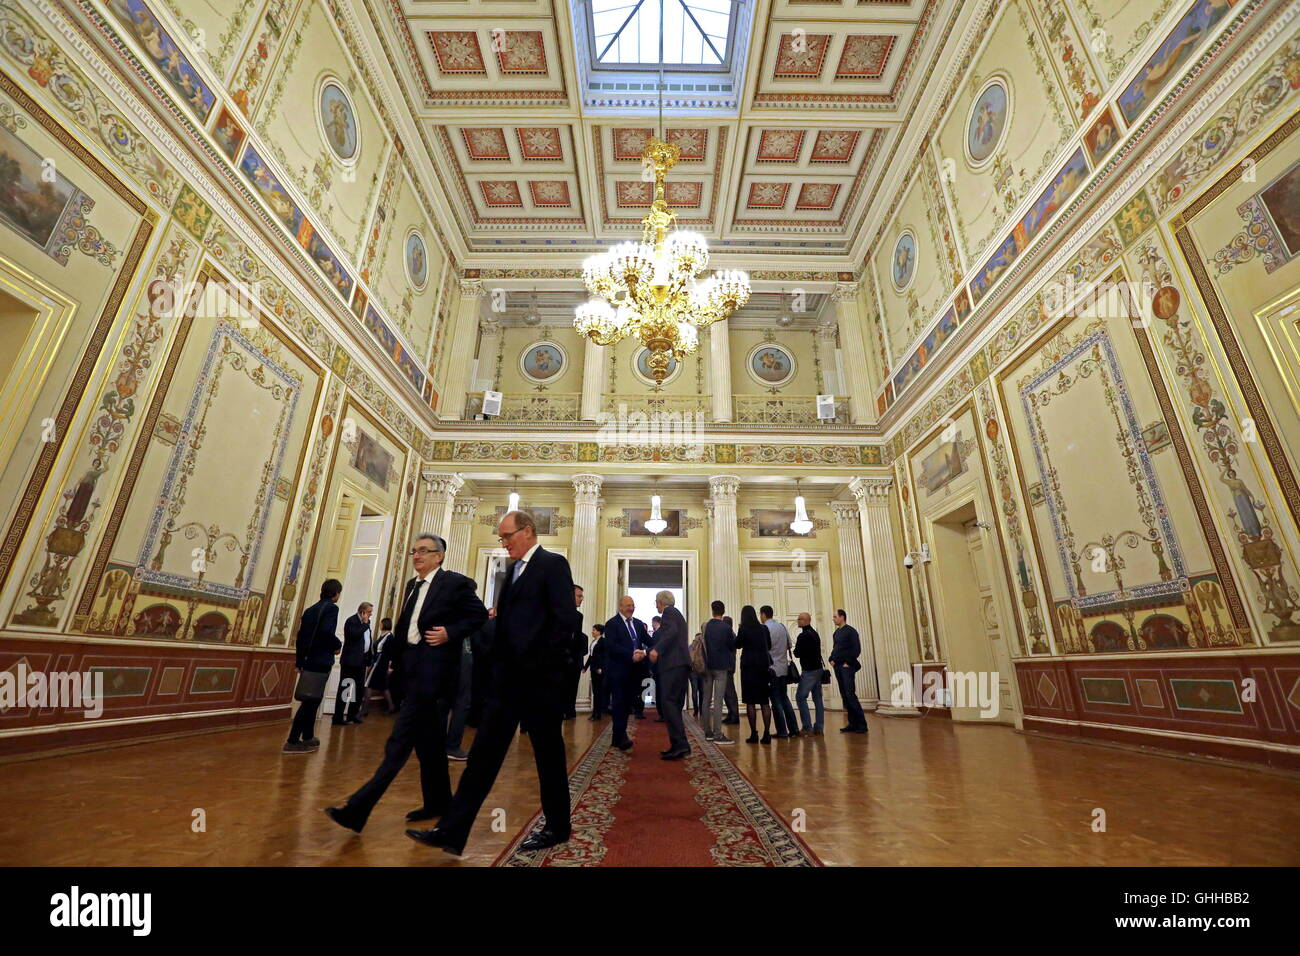 St Petersburg, Russia. 28th Sep, 2016. St Petersburg's Legislative Assembly members arrive for the first plenary - Stock Image